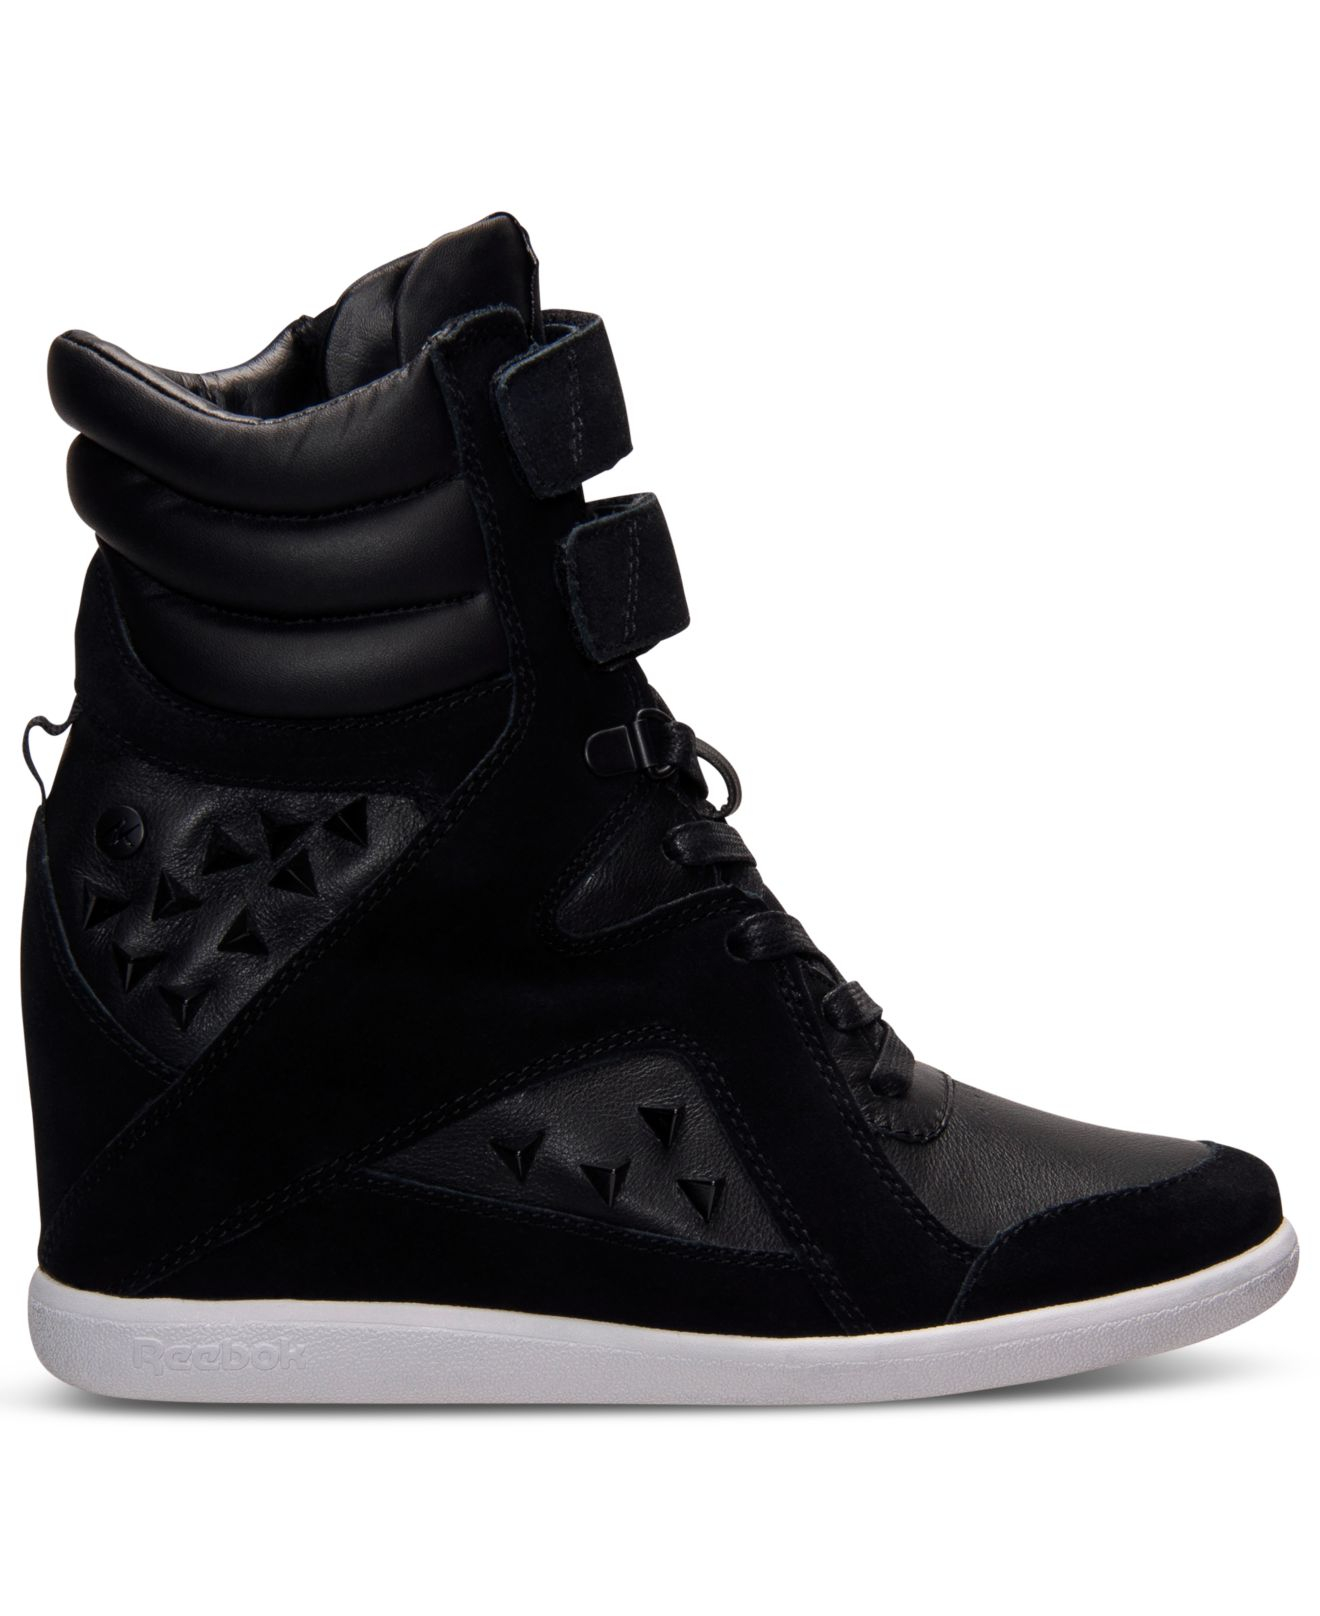 Lyst - Reebok Women S Alicia Keys Wedge Casual Sneakers From Finish ... e4b83efbd